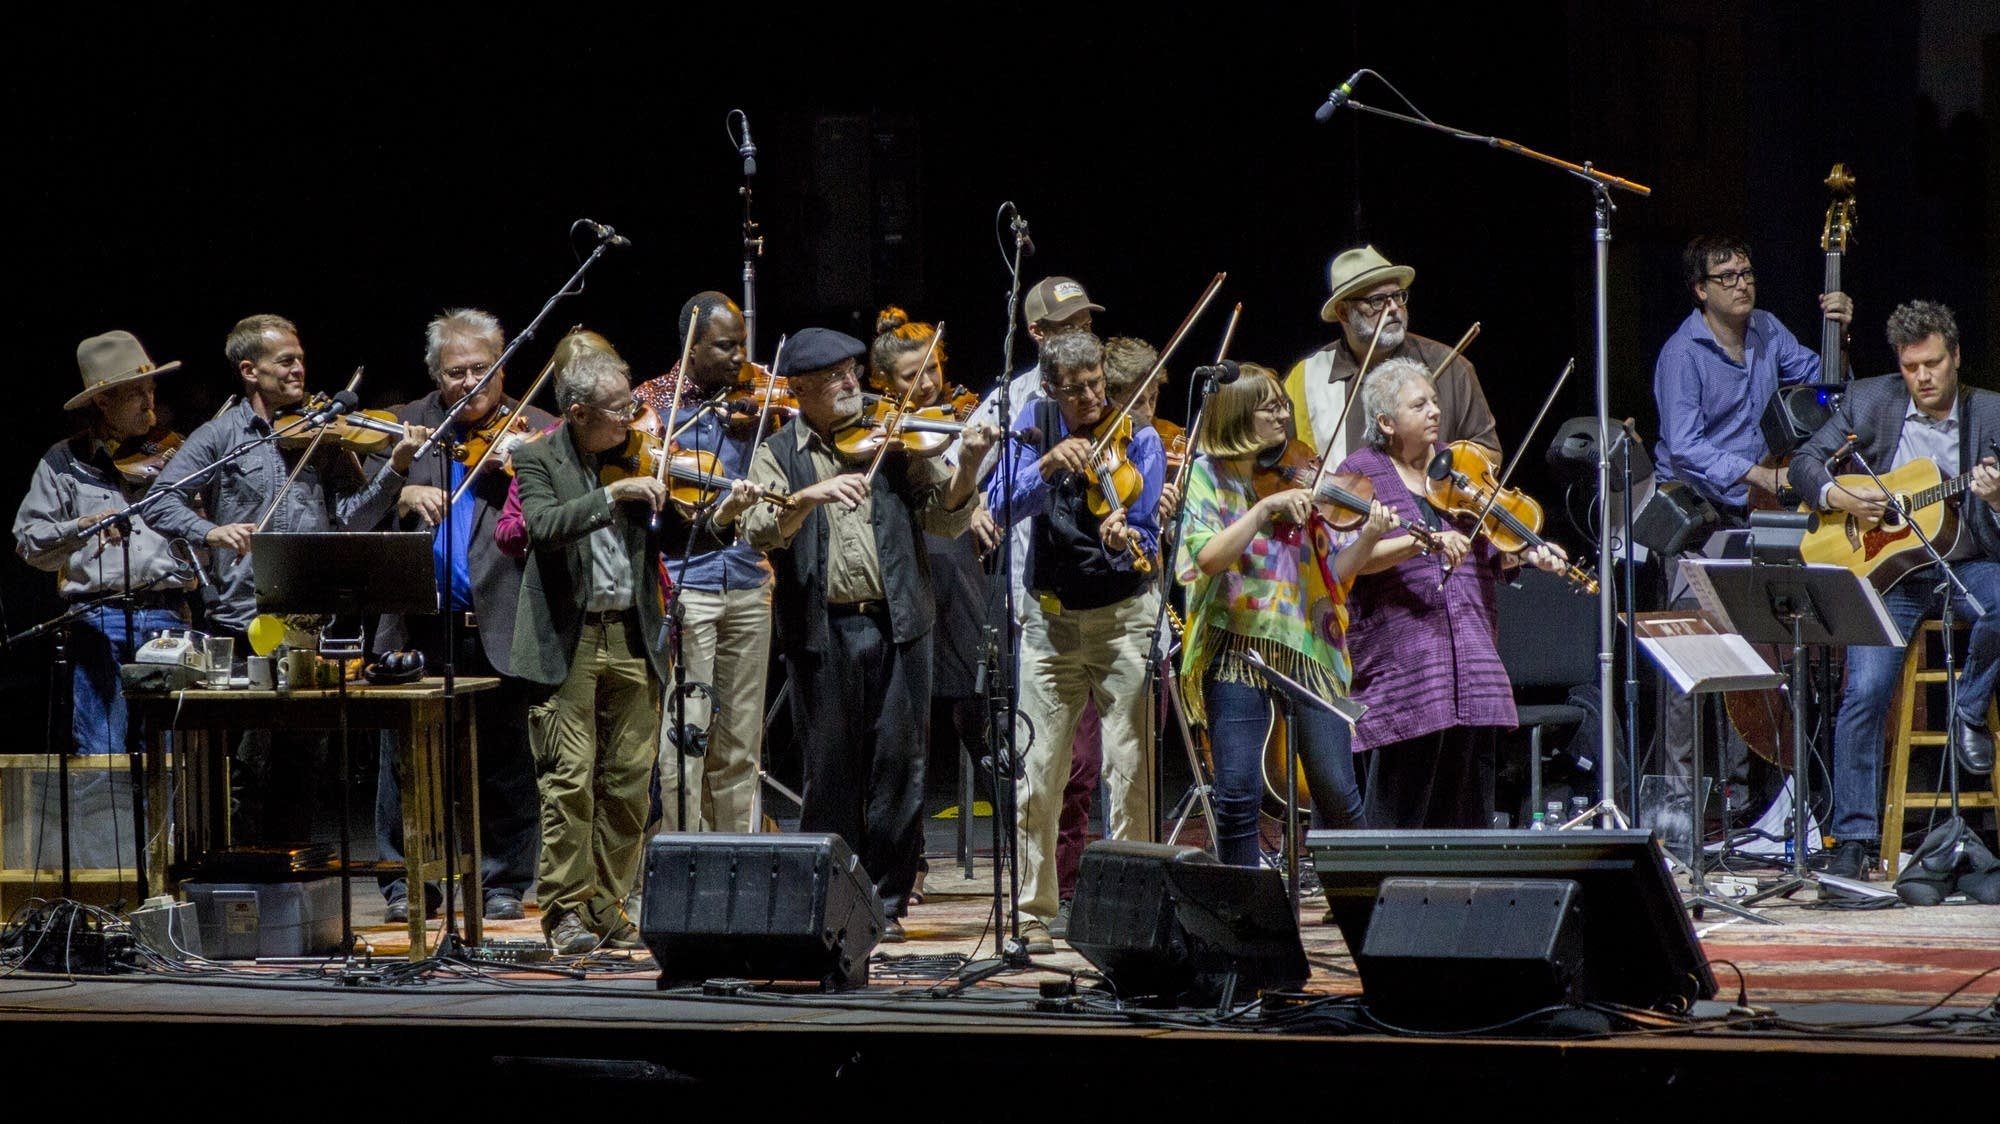 The All-Star Fair Fiddle Formation